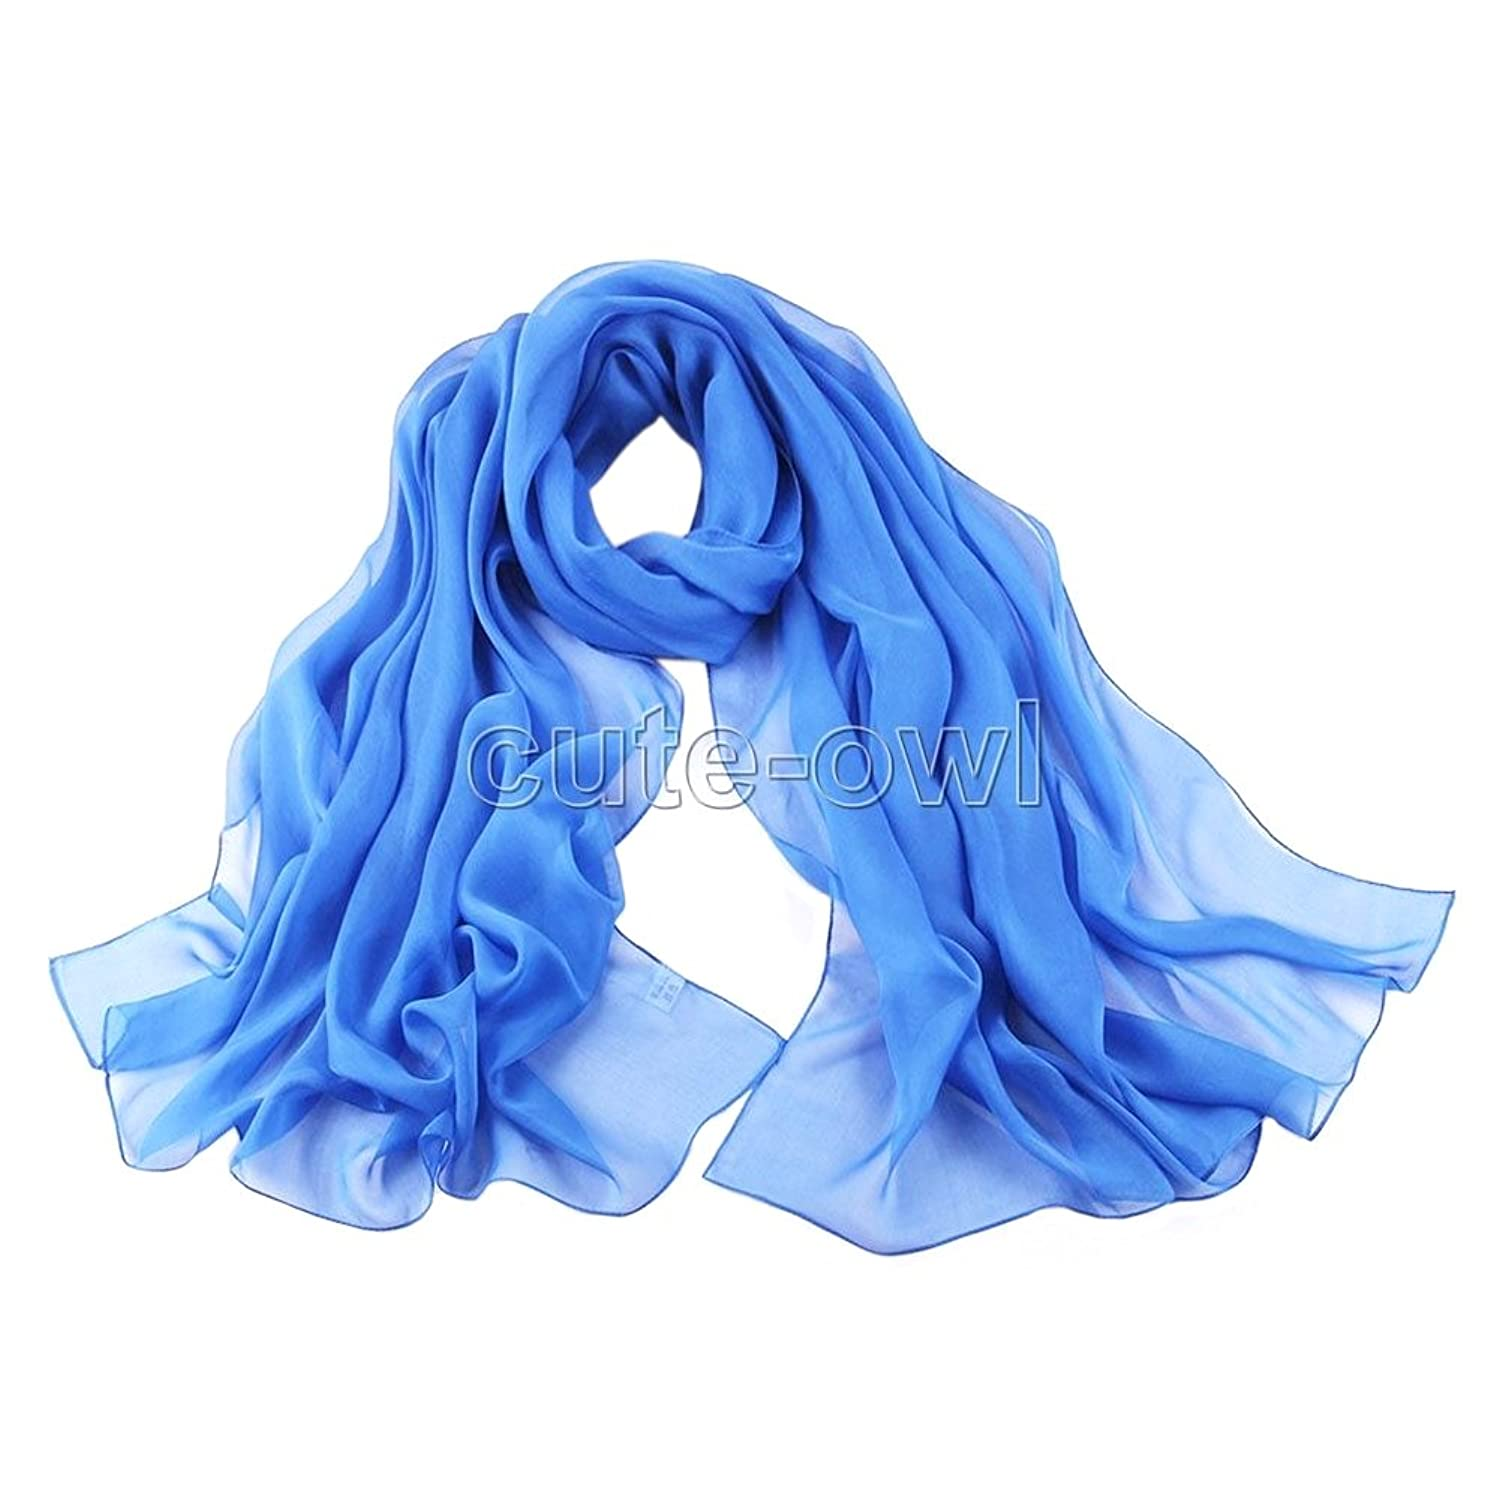 New Colorful Long Soft Women Fashion Chiffon Scarf Wrap Shawl Stole Scarves Gift #9